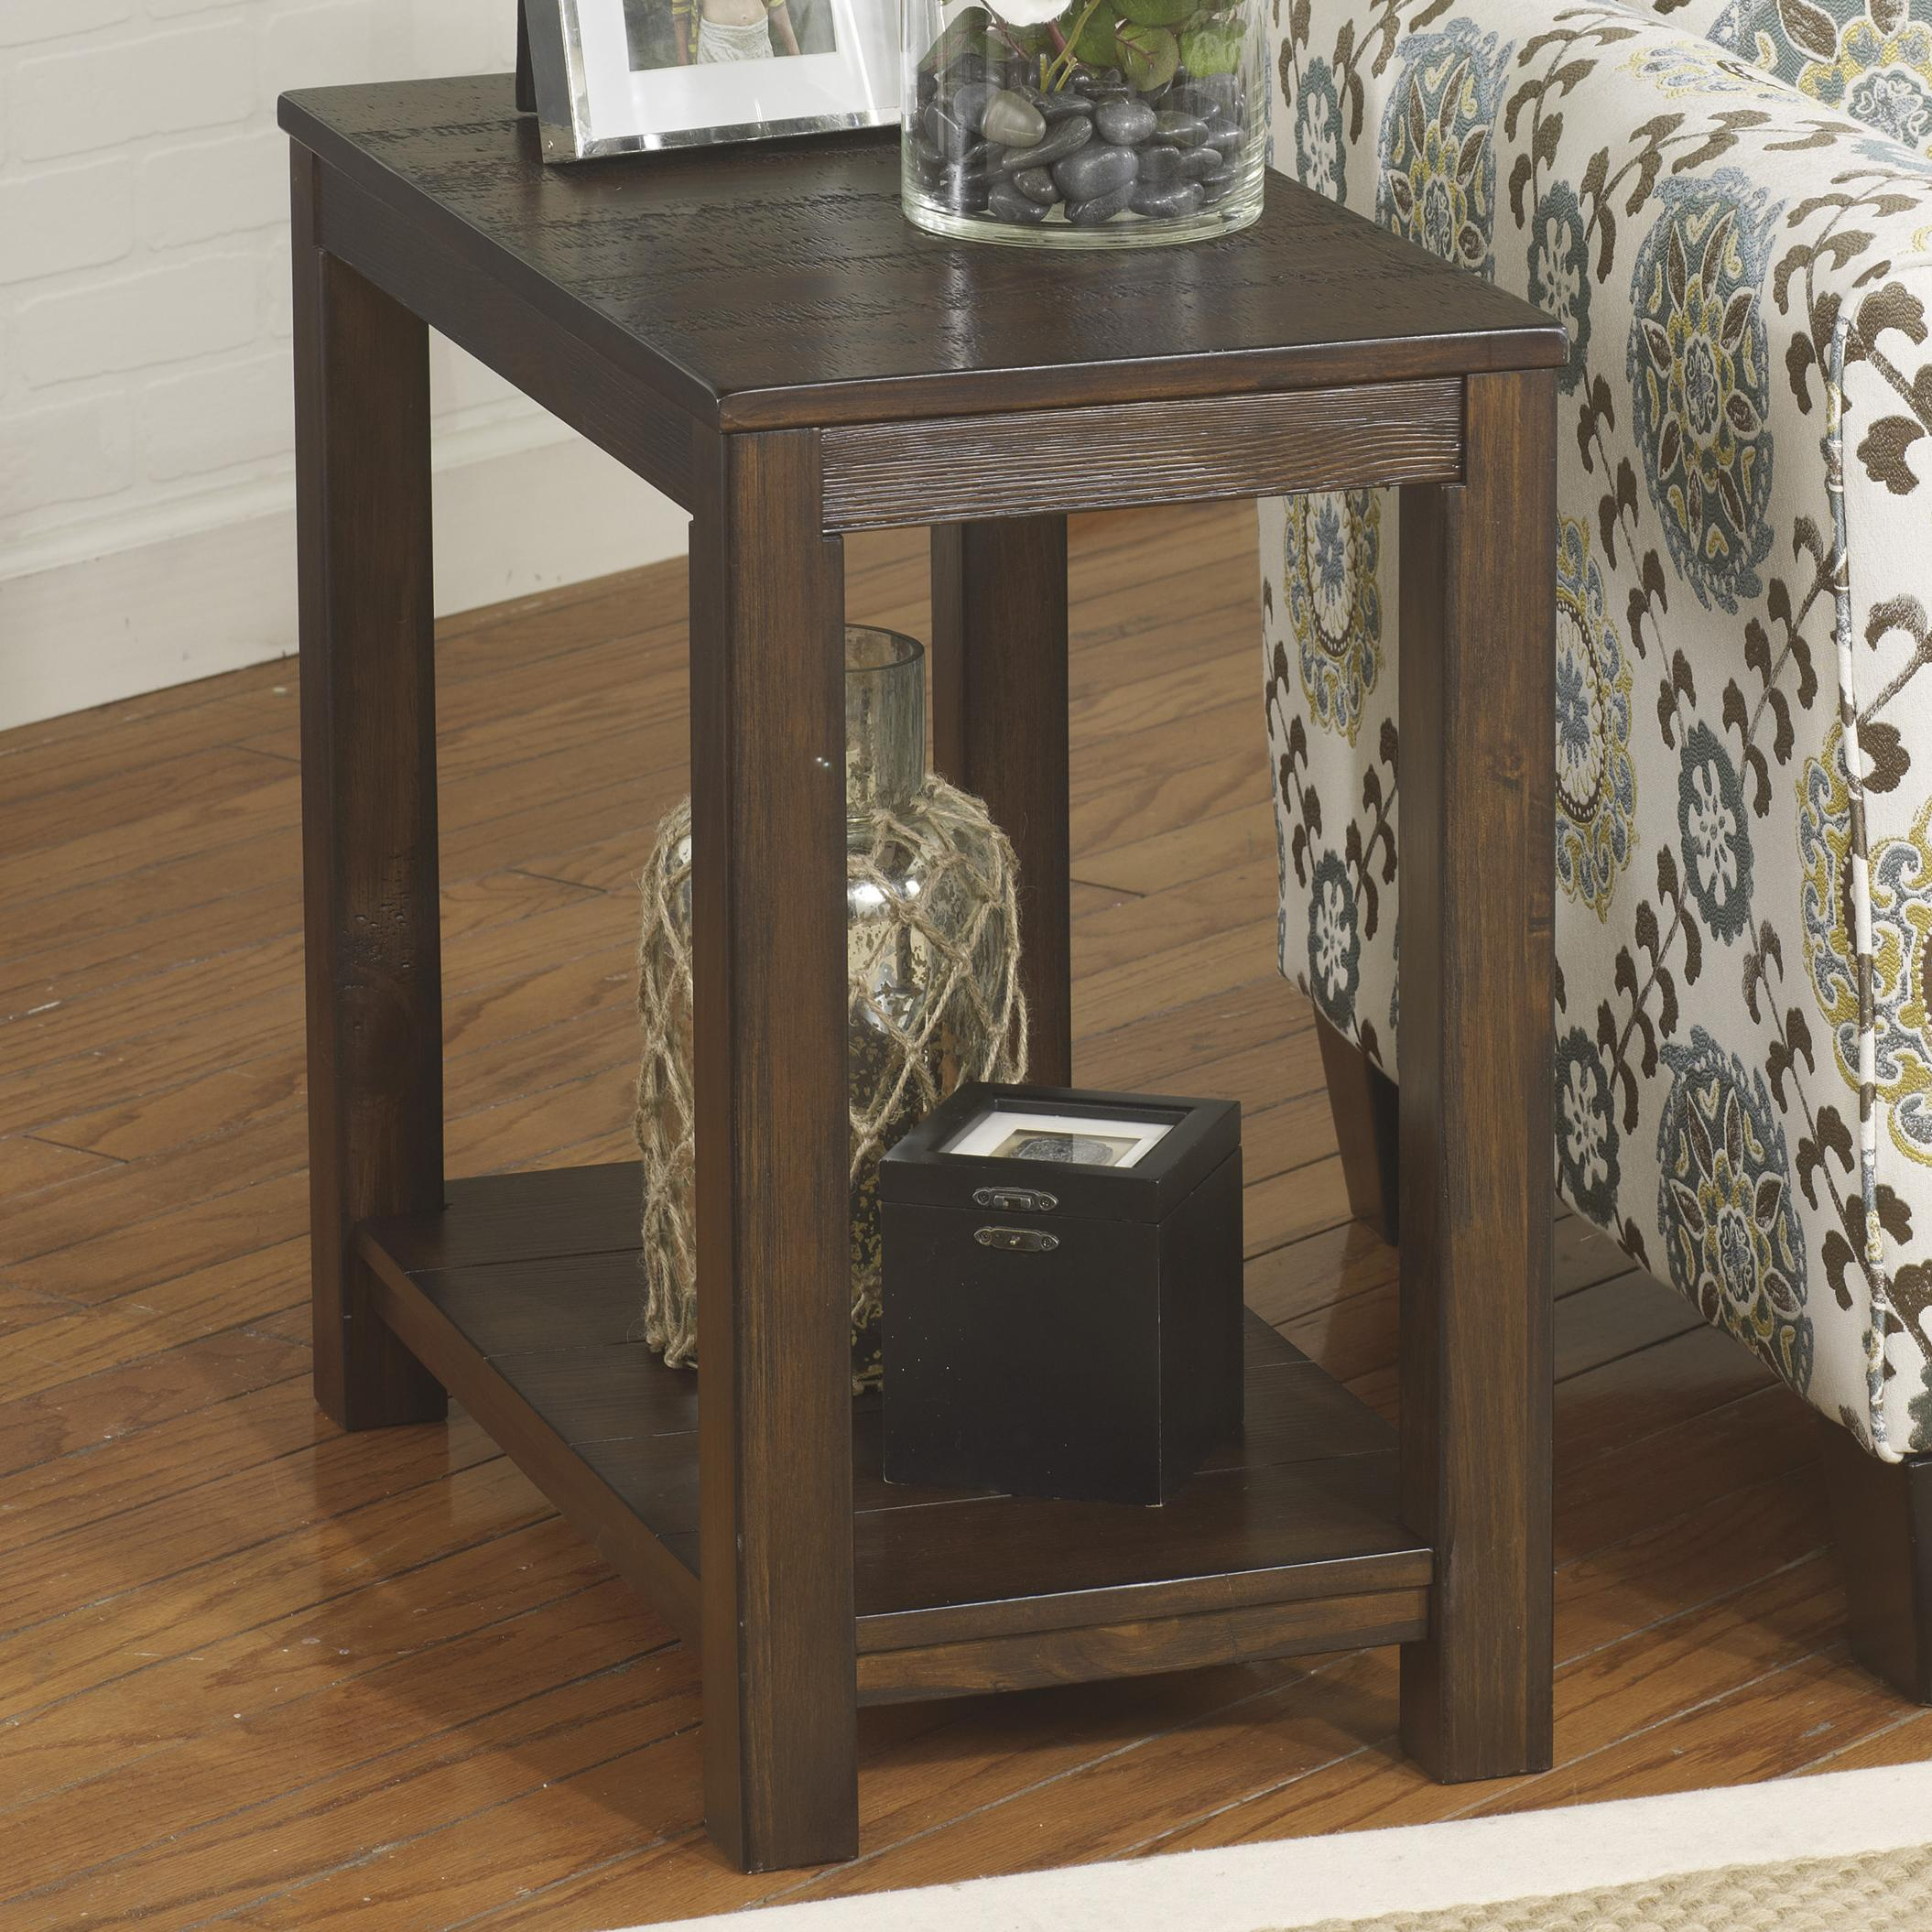 Signature Design by Ashley Grinlyn Chair Side End Table - Item Number: T660-7